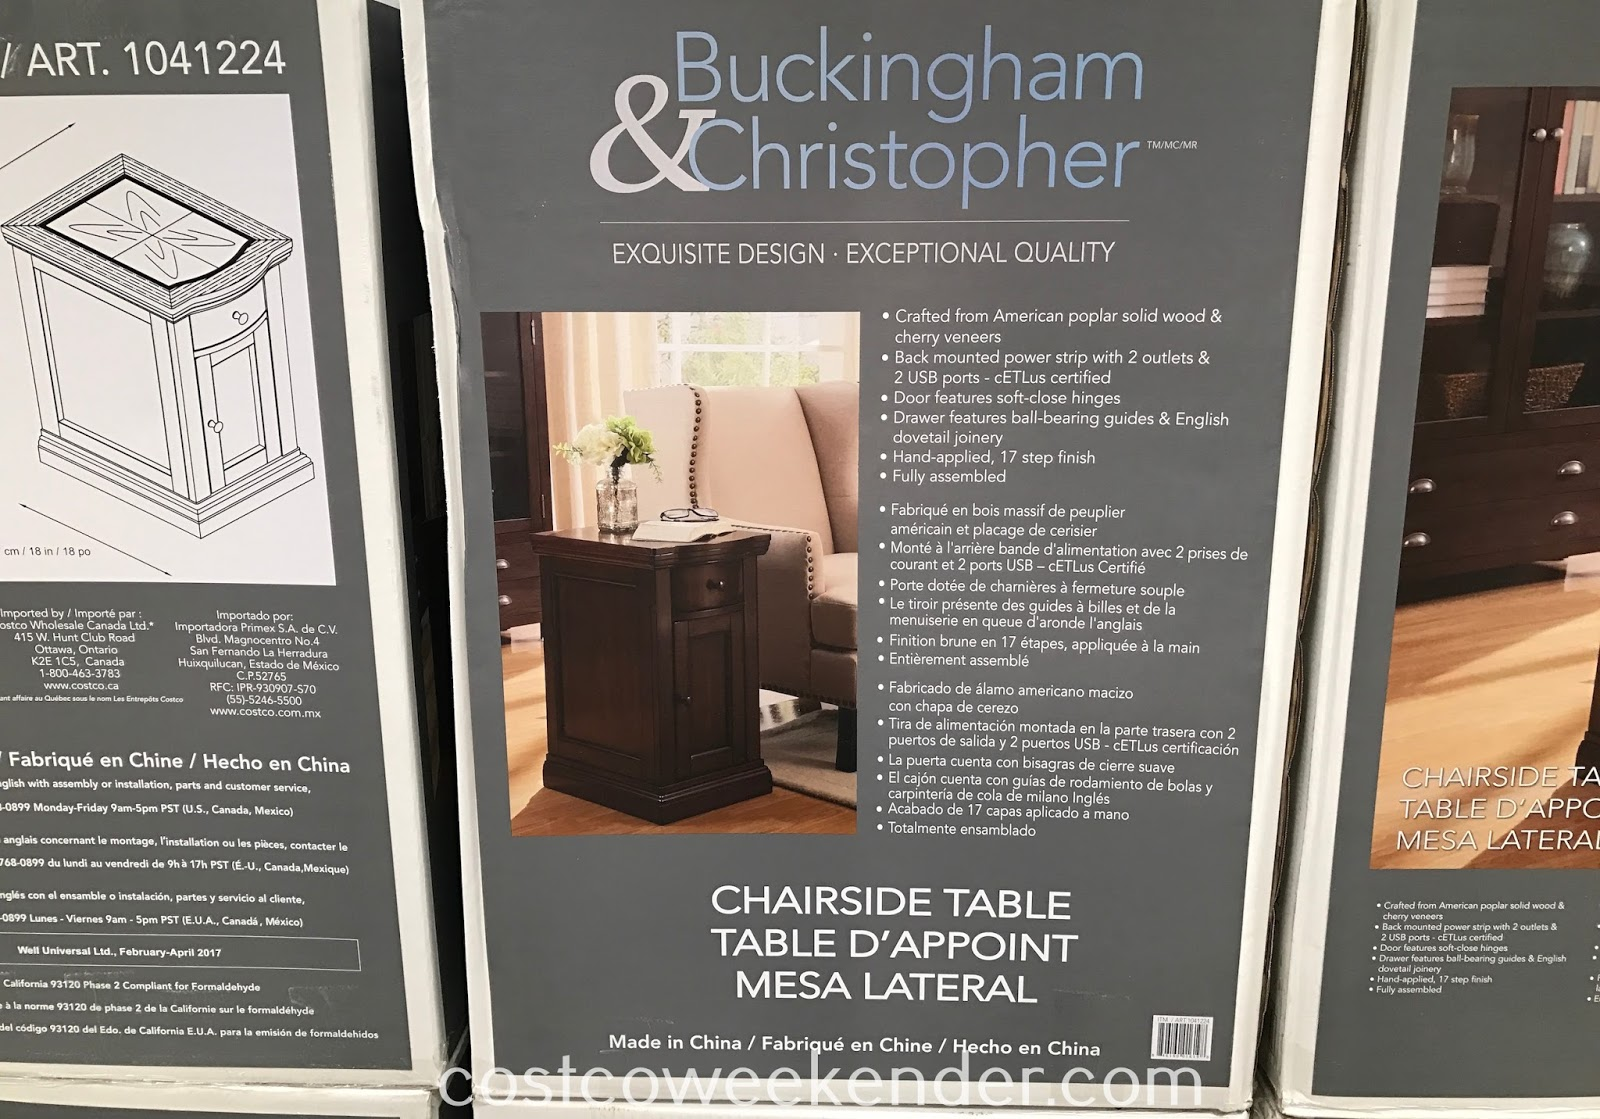 Costco 1041244 - Buckingham & Christopher Well Universal Chairside Table: great as an end table in your home